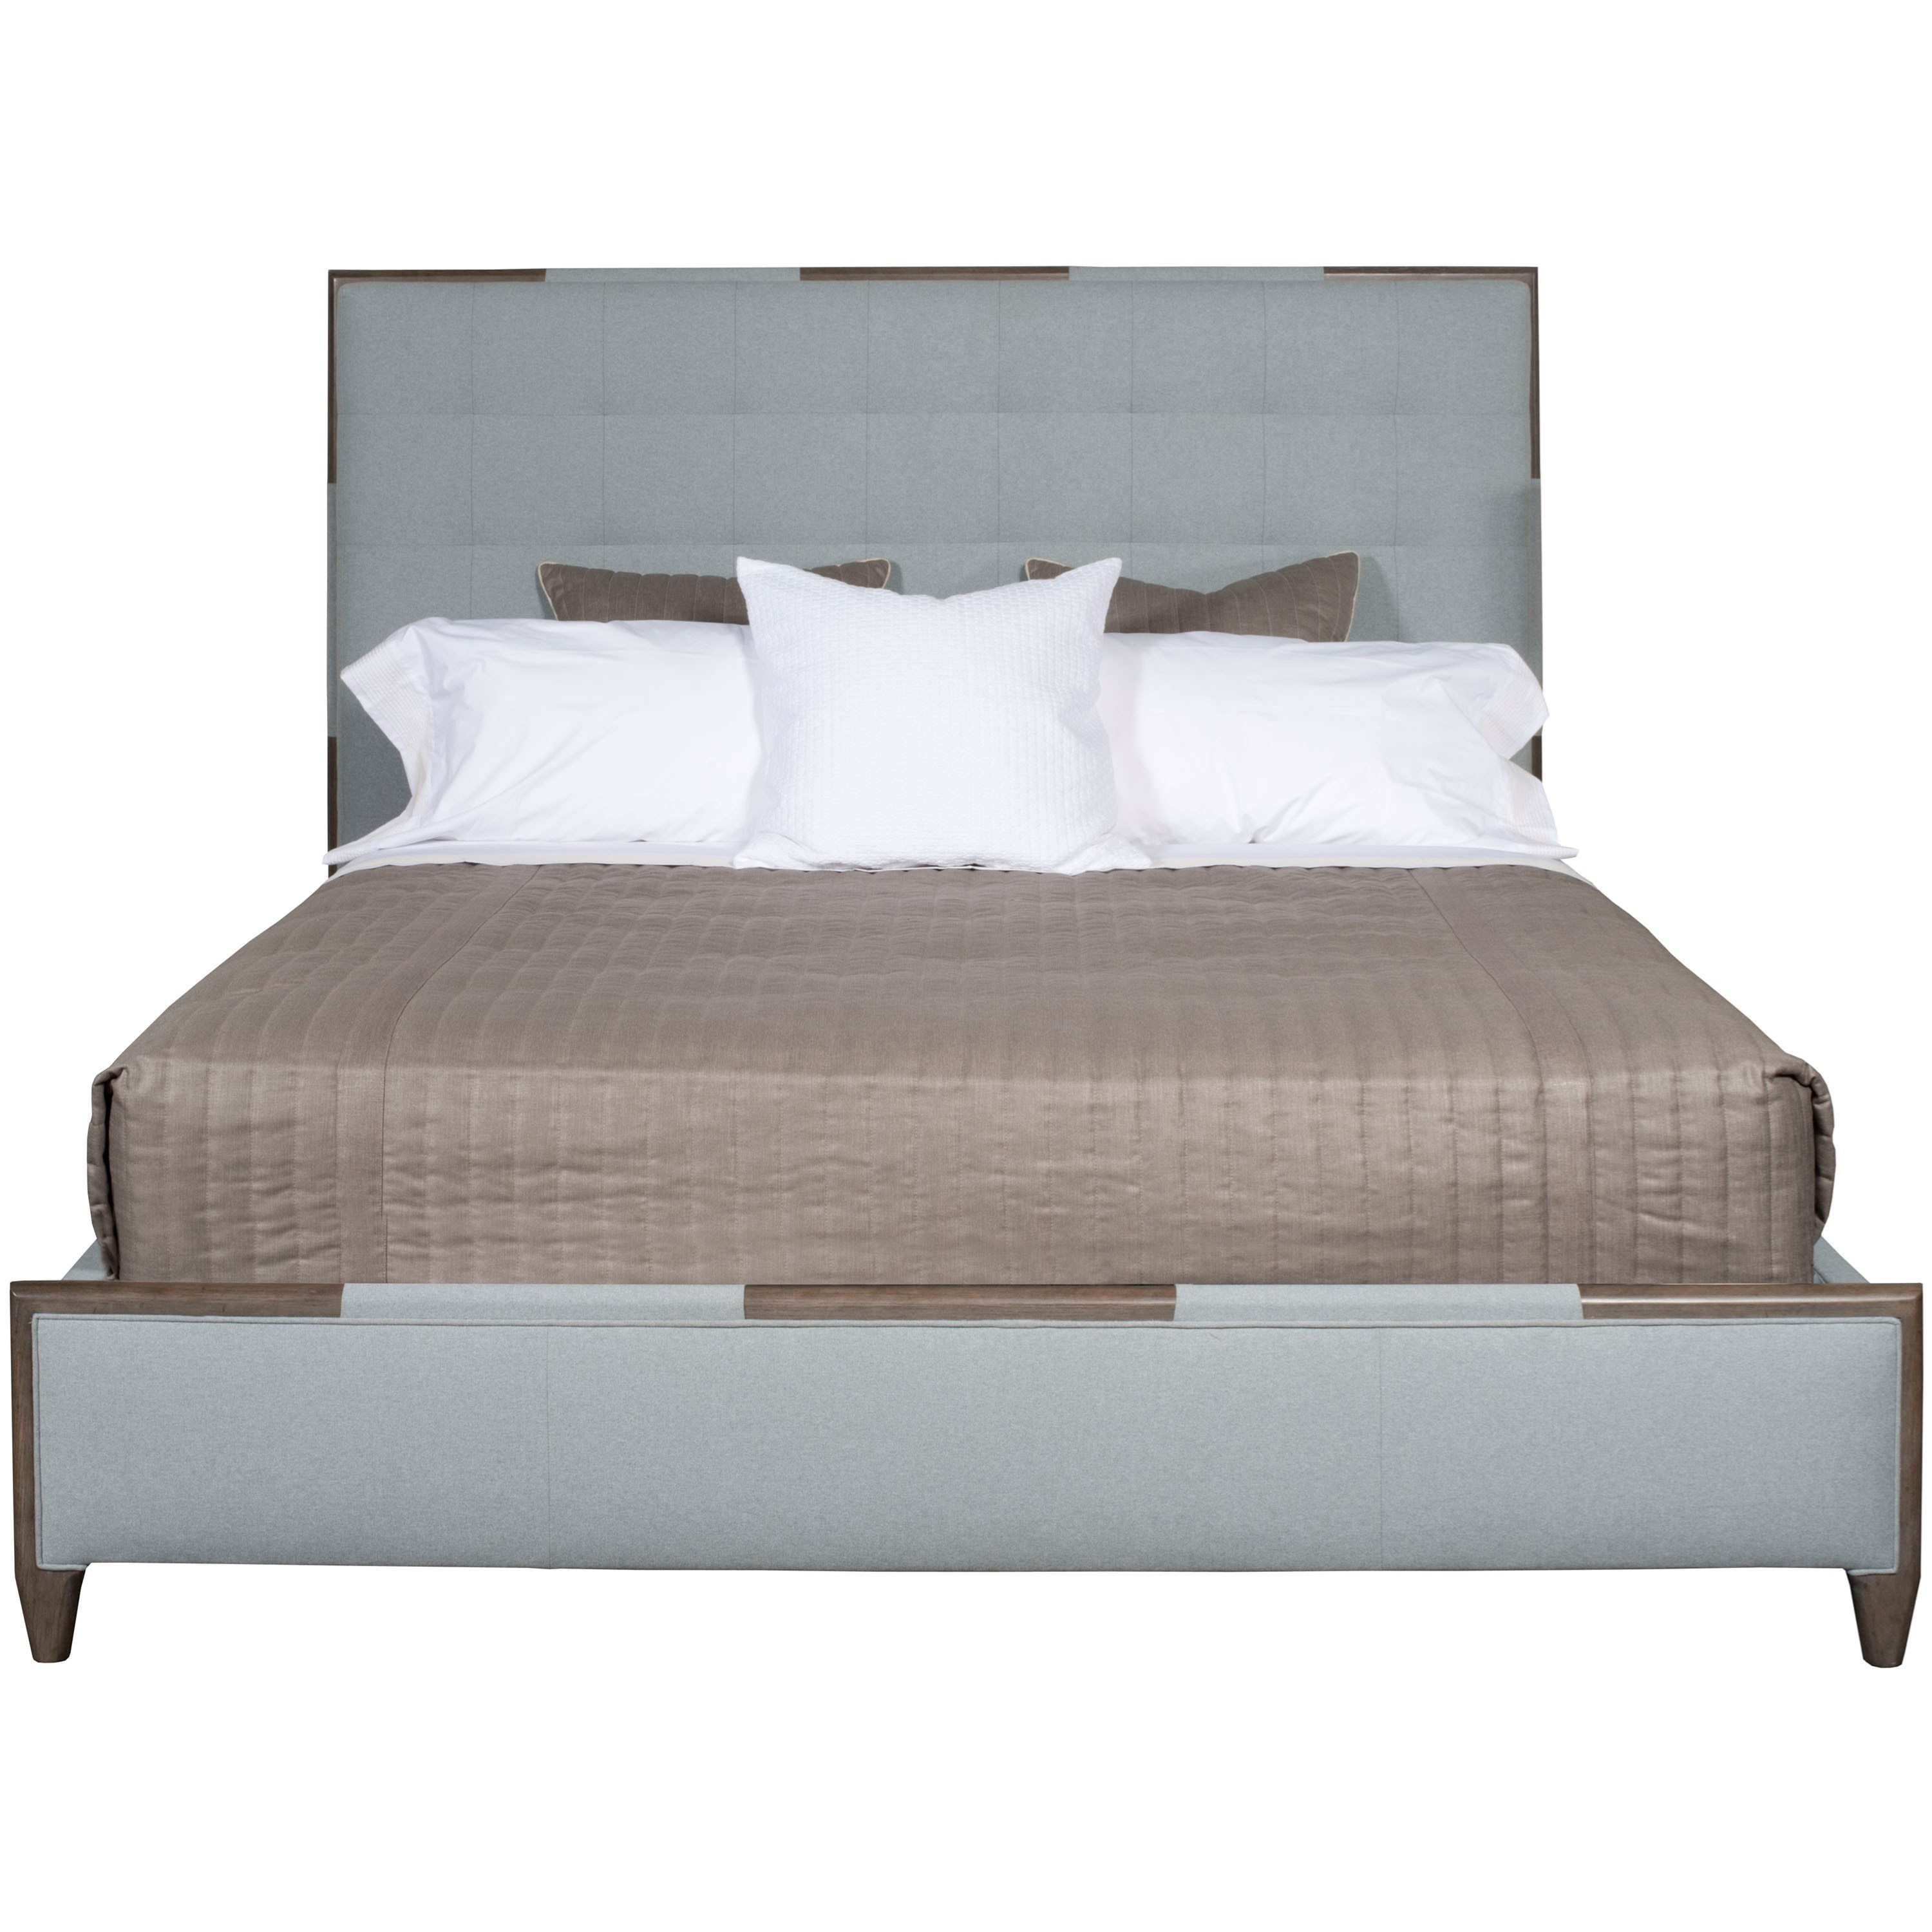 Vanguard Furniture Chatfield By Thom Filicia Home Transitional King Upholstered Bed With Wood Trim Belfort Furniture Upholstered Beds